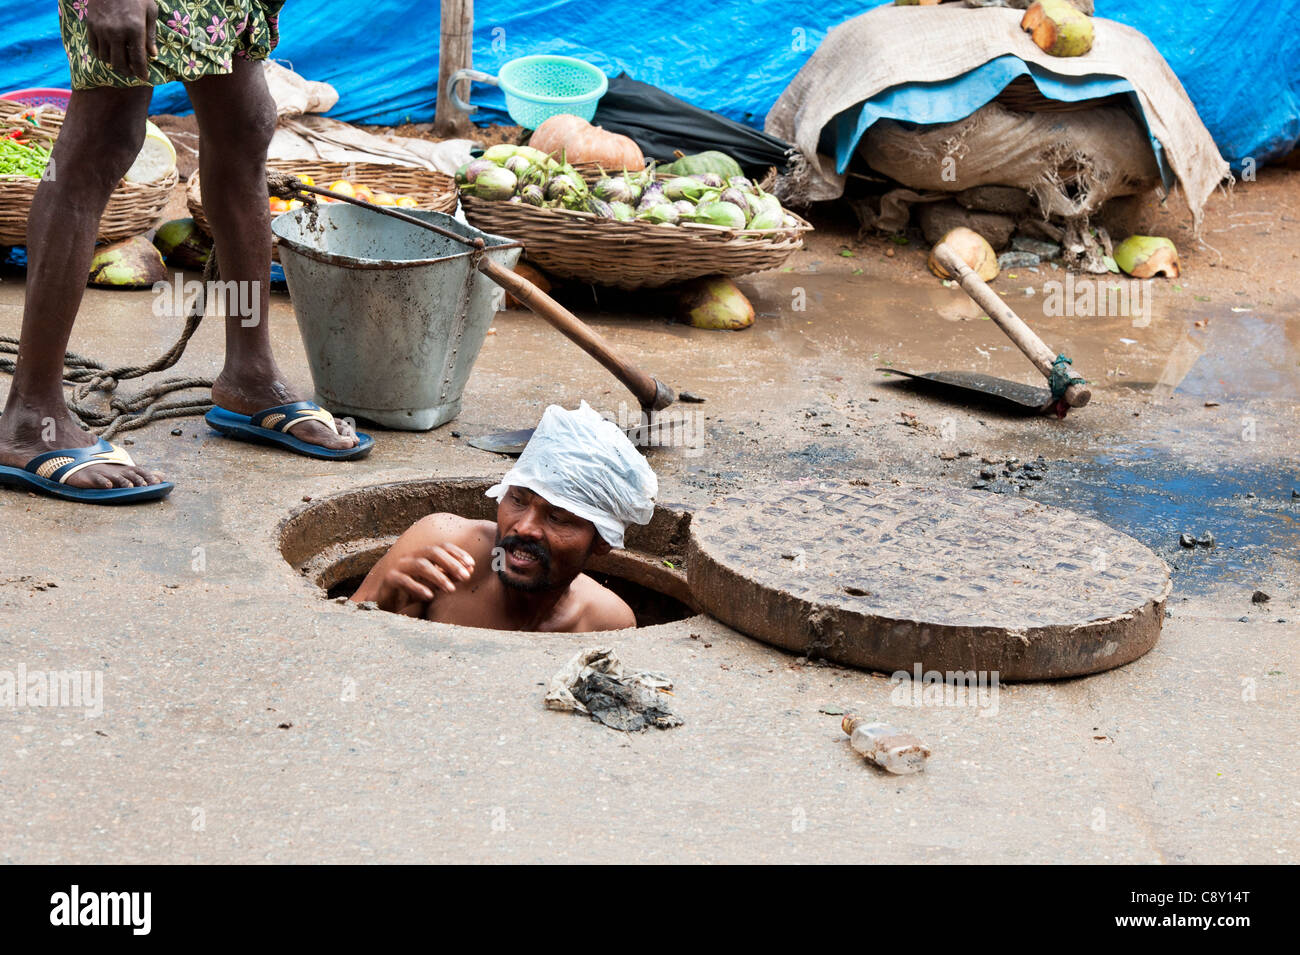 Indian sewage worker coming up from unblocking drains in the street. Puttaparthi, Andhra Pradesh, India - Stock Image